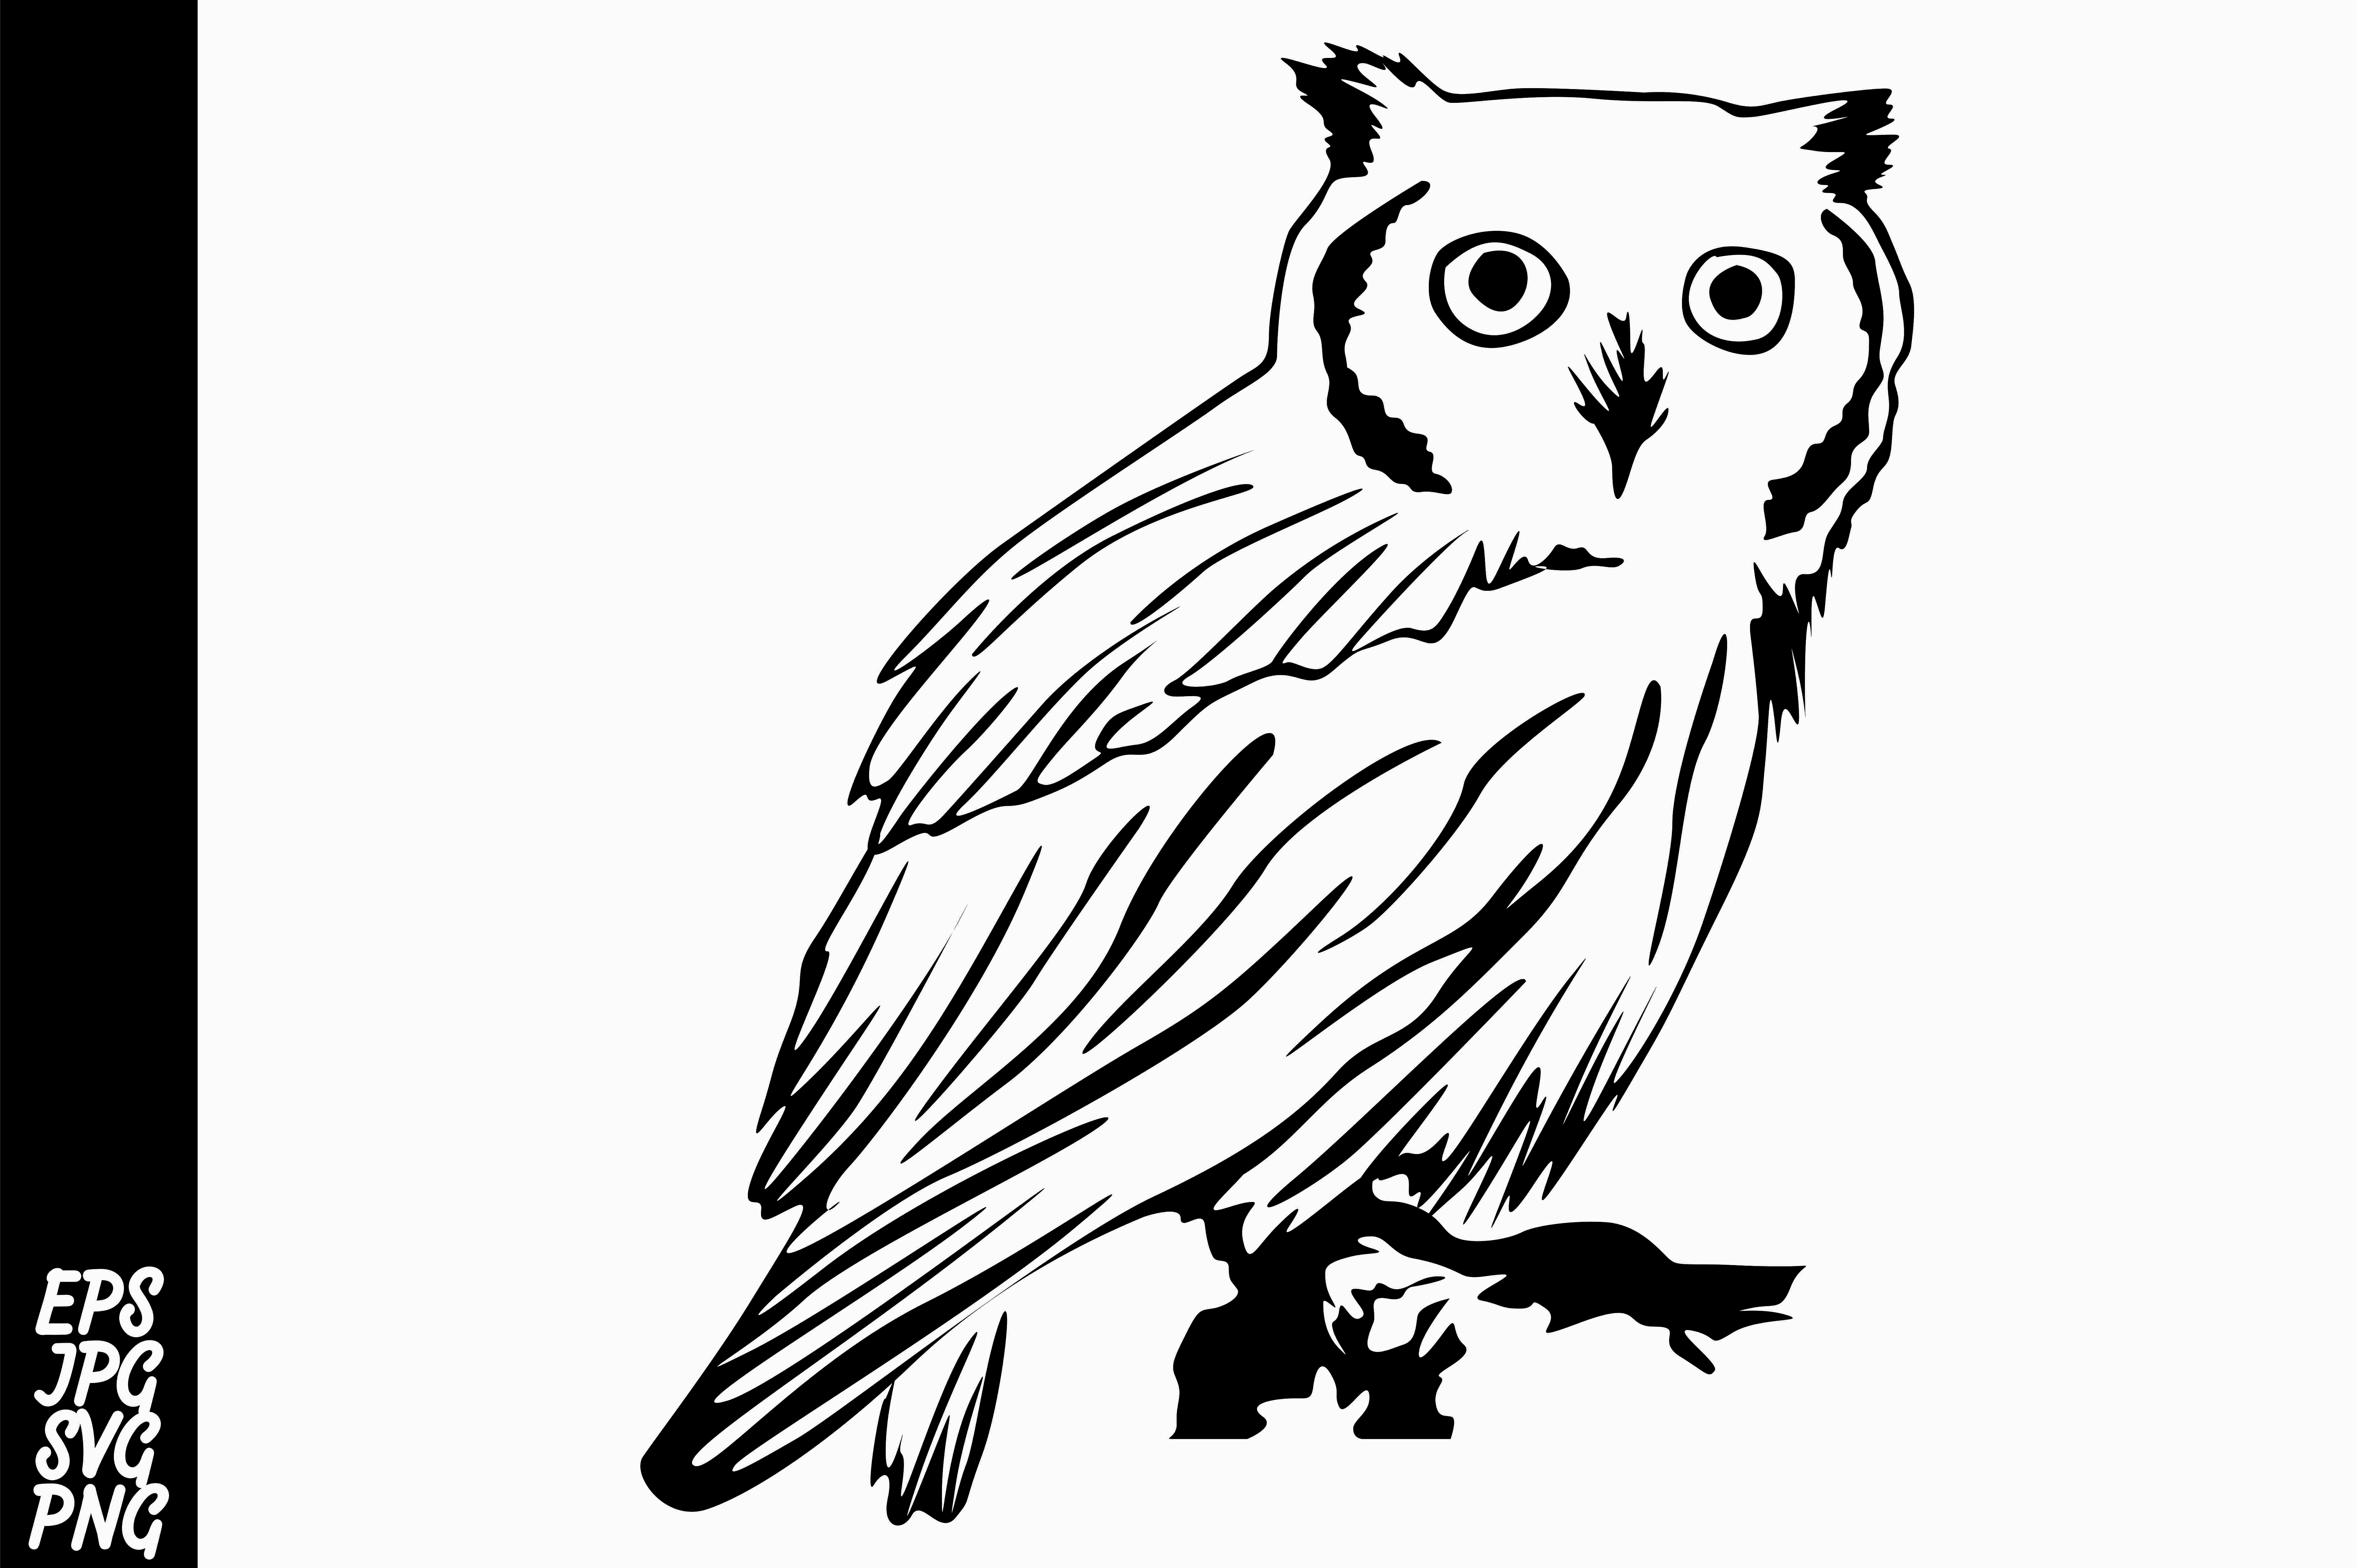 Download Free Line Art Owl Graphic By Arief Sapta Adjie Creative Fabrica for Cricut Explore, Silhouette and other cutting machines.